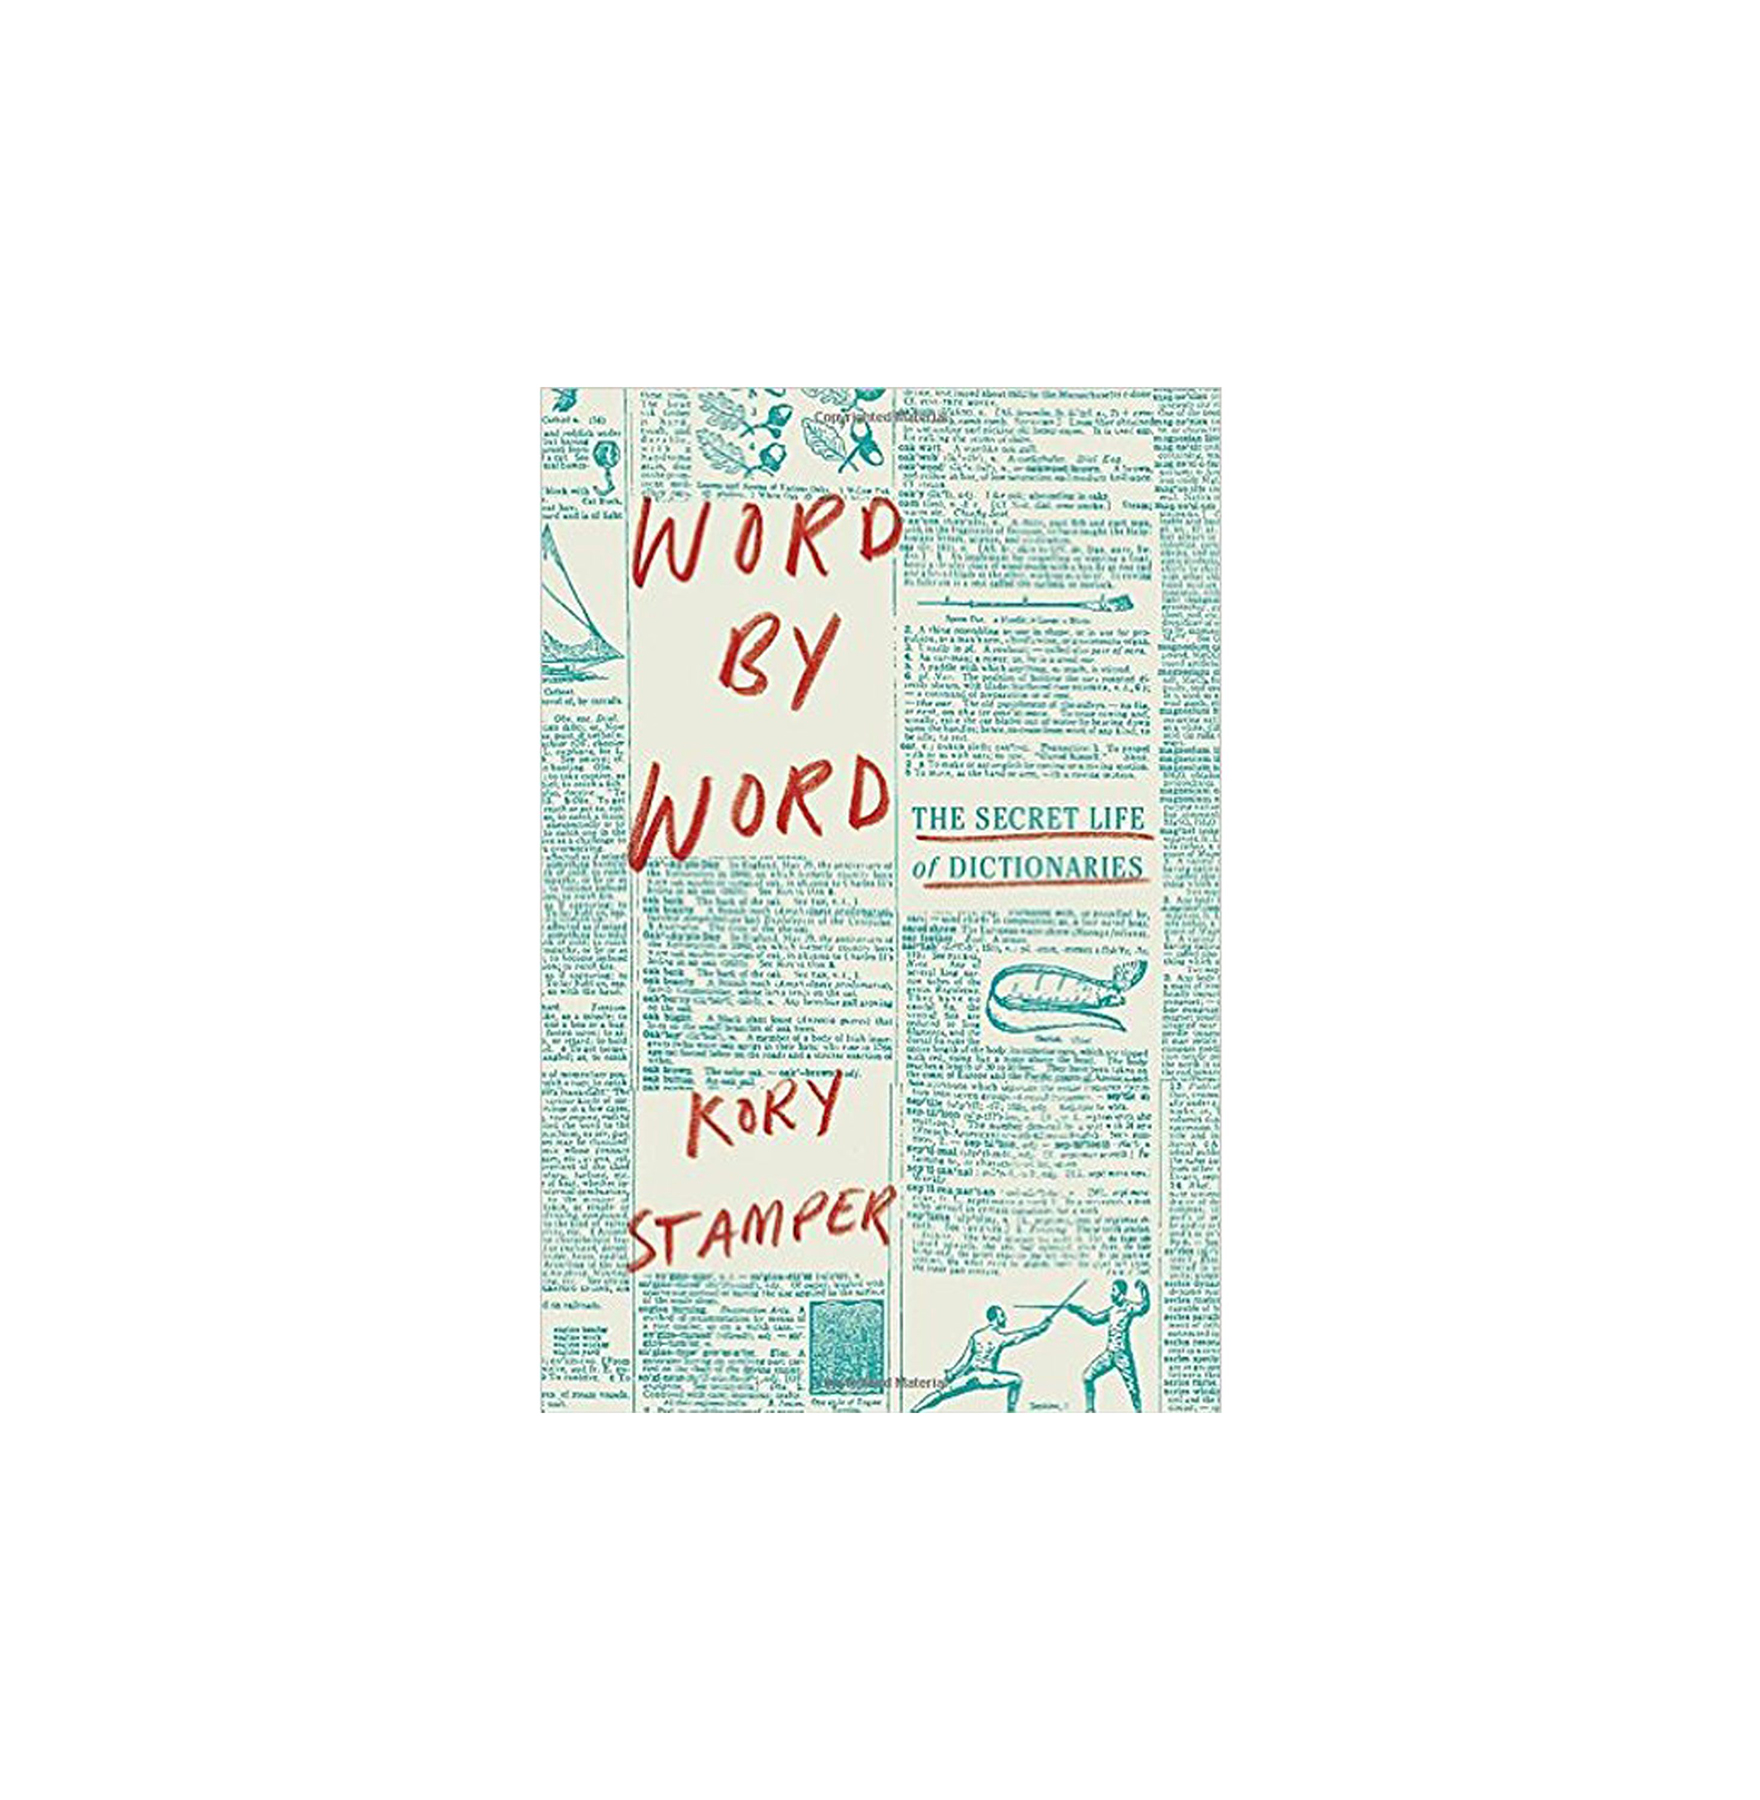 Word by Word: The Secret Life of Dictionaries, by Kory Stamper